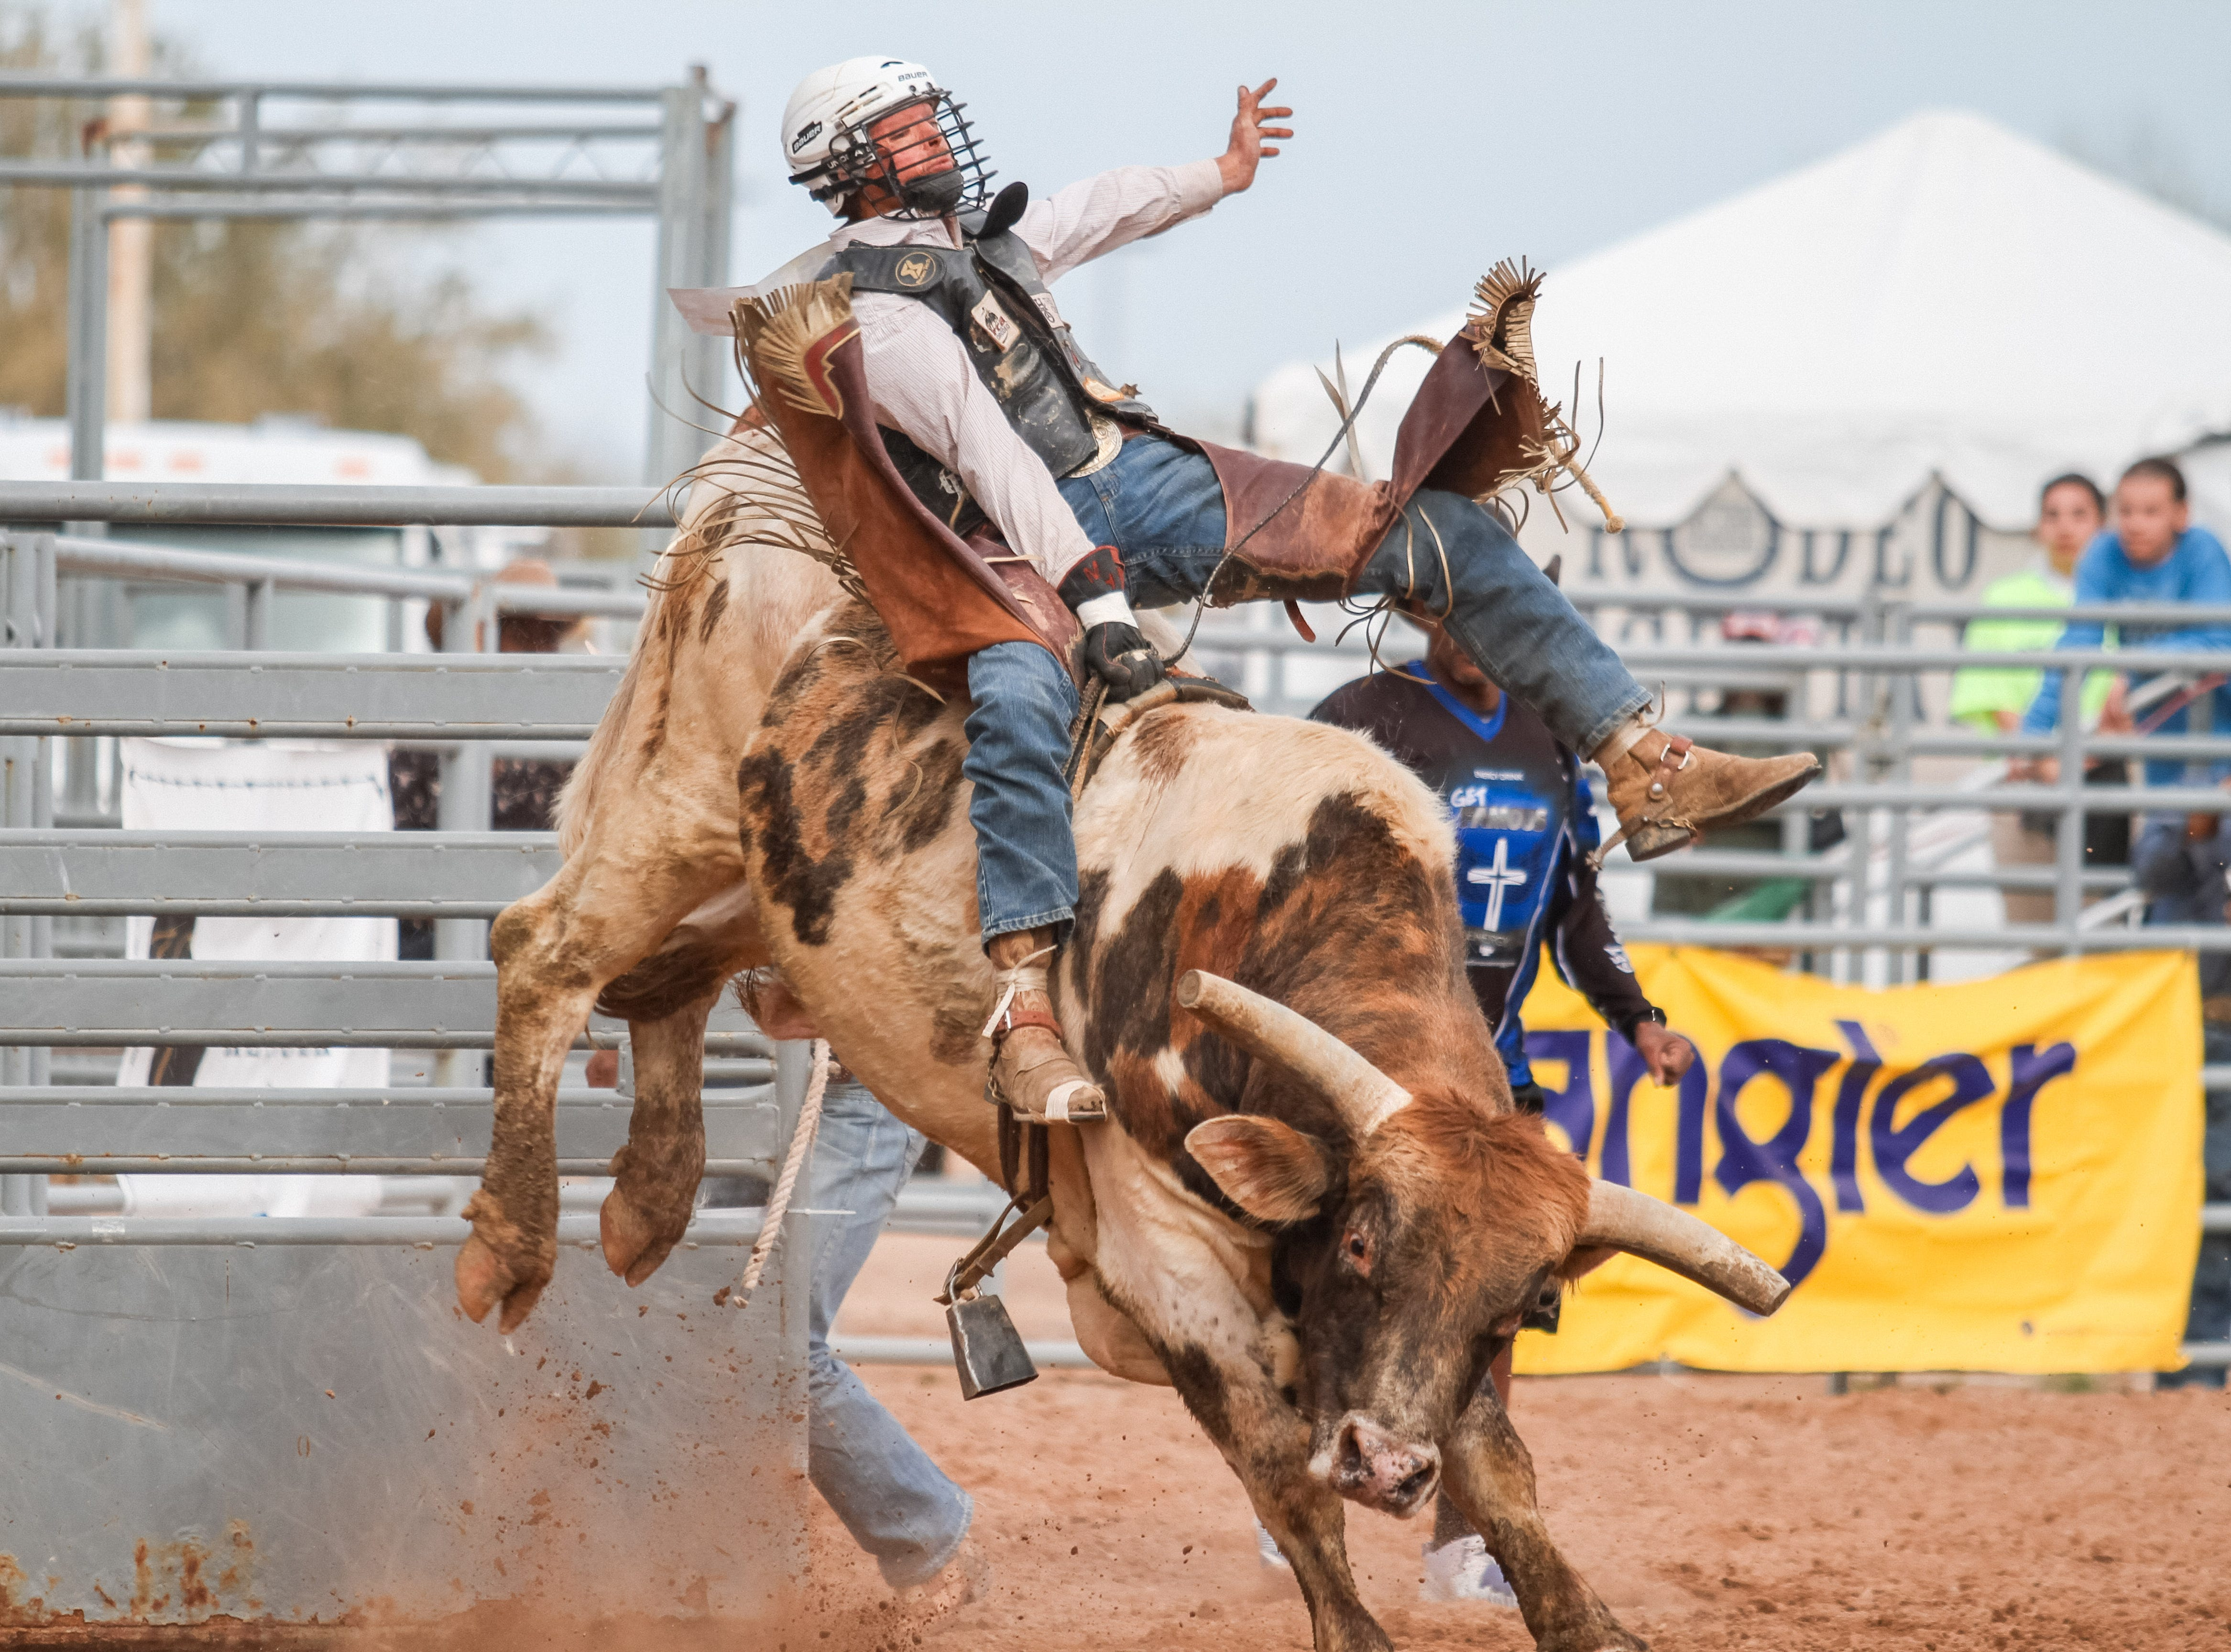 Bull riders compete at the Arizona Black Rodeo in Chandler, Arizona on Saturday, March 9, 2019.